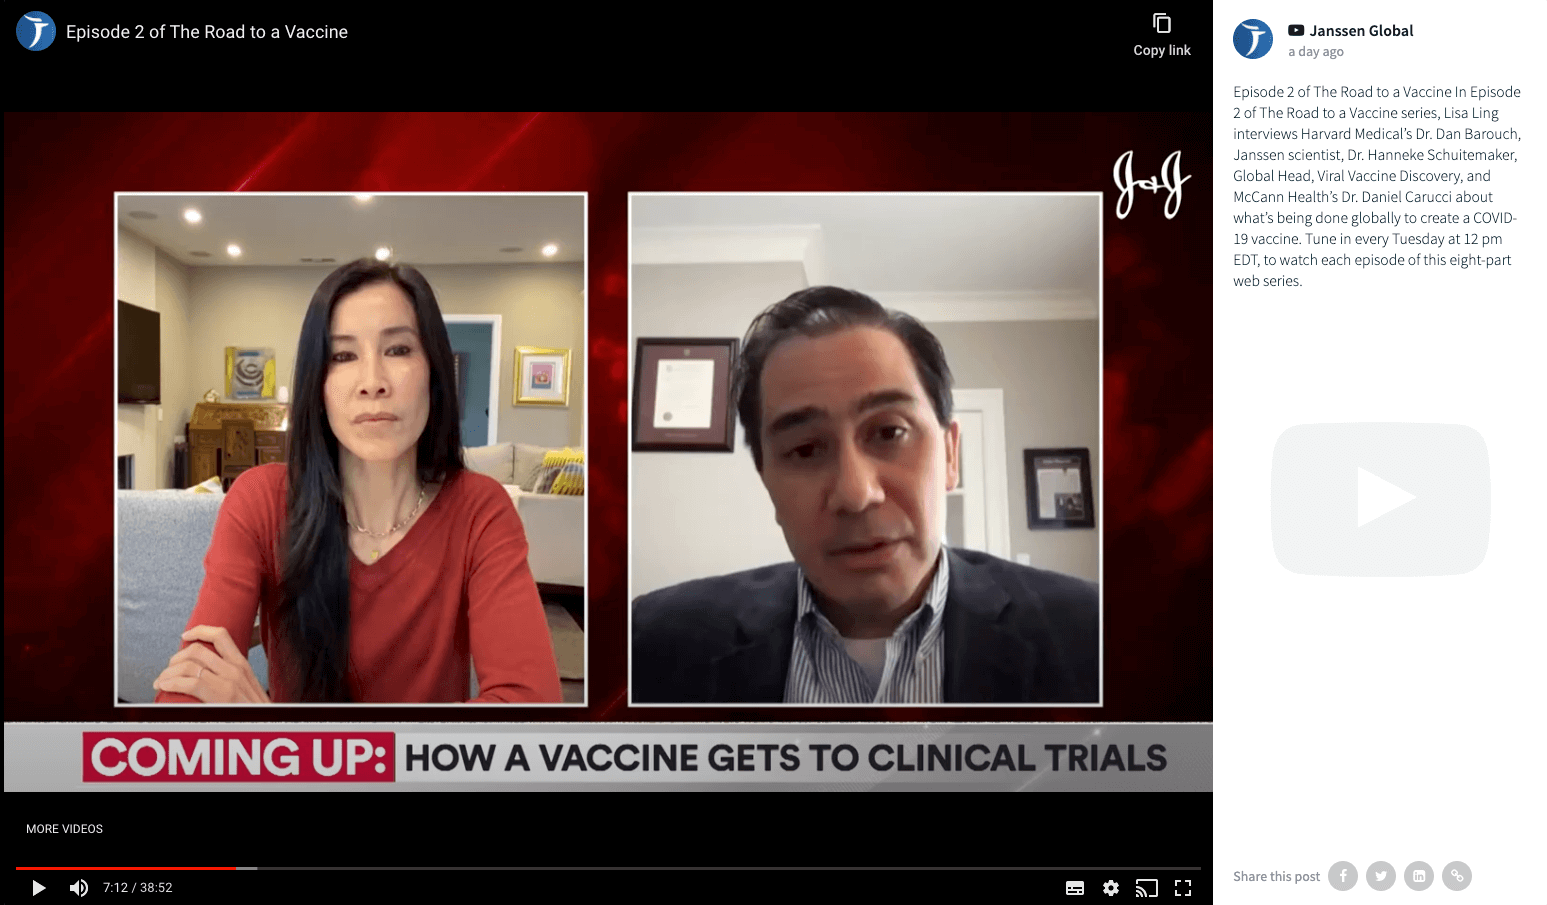 """Screenshot of a YouTube post by Janssen Global, as shown on the social media wall. The video is paused on a frame that shows an interviewer on the left and her interview partner on the right. They are clearly in different locations and their shots are displayed side-by-side. Underneath them on the screen, a banner says """"Coming up: How a vaccine gets to clinical trials"""".  The caption of the post reads """"Episode 2 of The Road to a Vaccine In Episode 2 of The Road to a Vaccine series, Lisa Ling interviews Harvard Medical's Dr. Dan Barouch, Janssen scientist, Dr. Hanneke Schuitemaker, Global Head, Viral Vaccine Discovery, and McCann Health's Dr. Daniel Carucci about what's being done globally to create a COVID-19 vaccine. Tune in every Tuesday at 12 pm EDT, to watch each episode of this eight-part web series."""""""